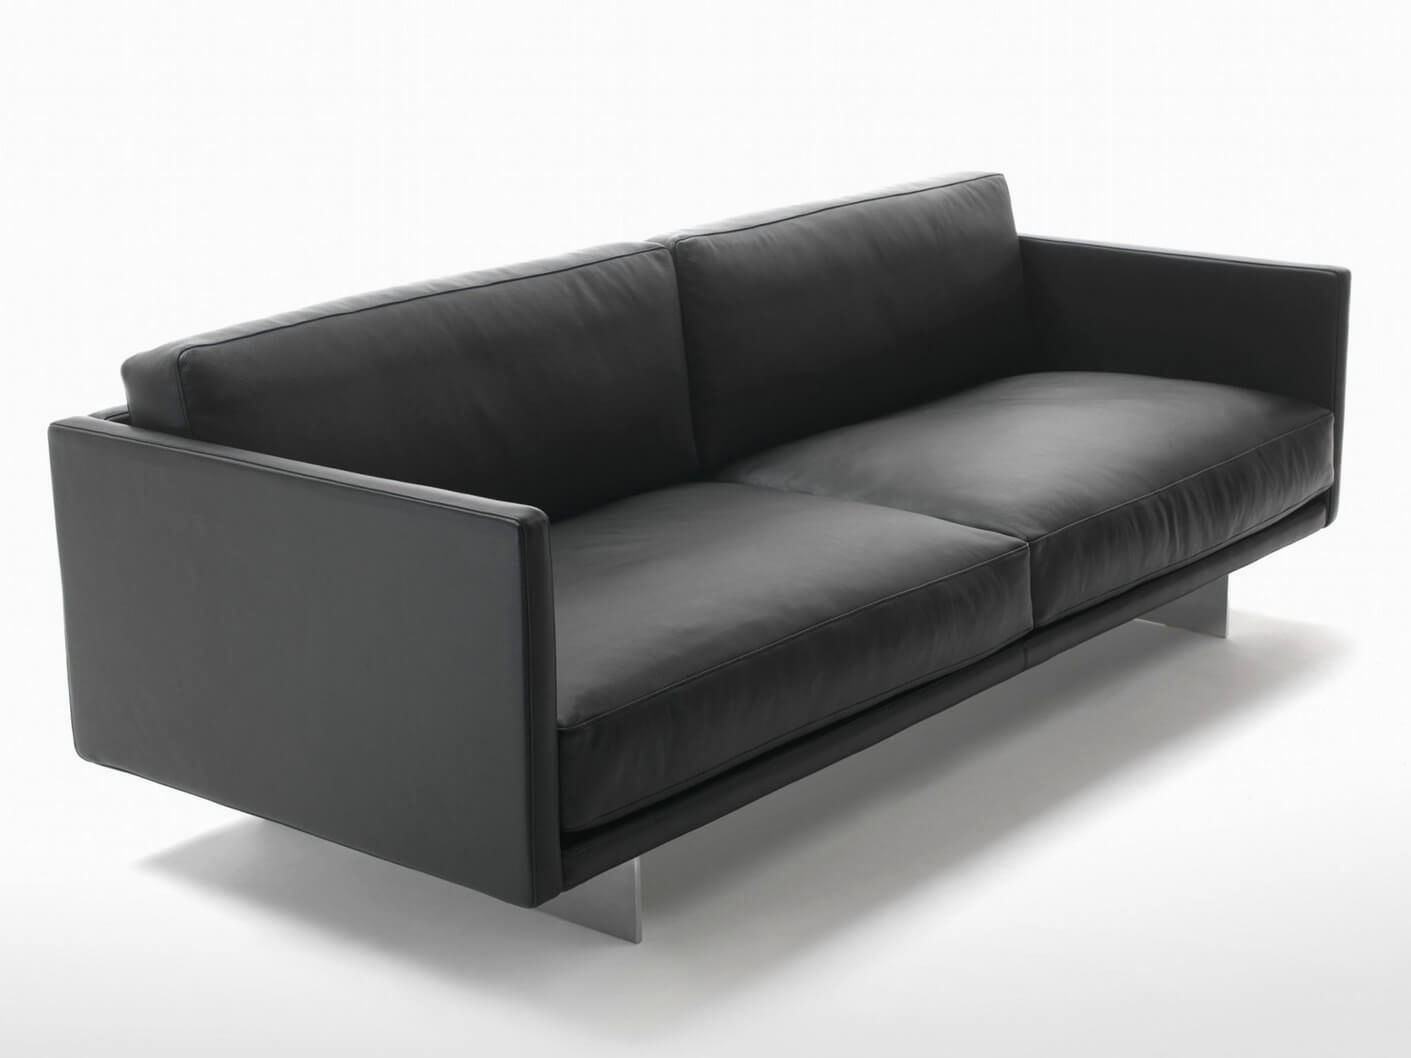 superb kebo futon sofa bed concept-Stunning Kebo Futon sofa Bed Image